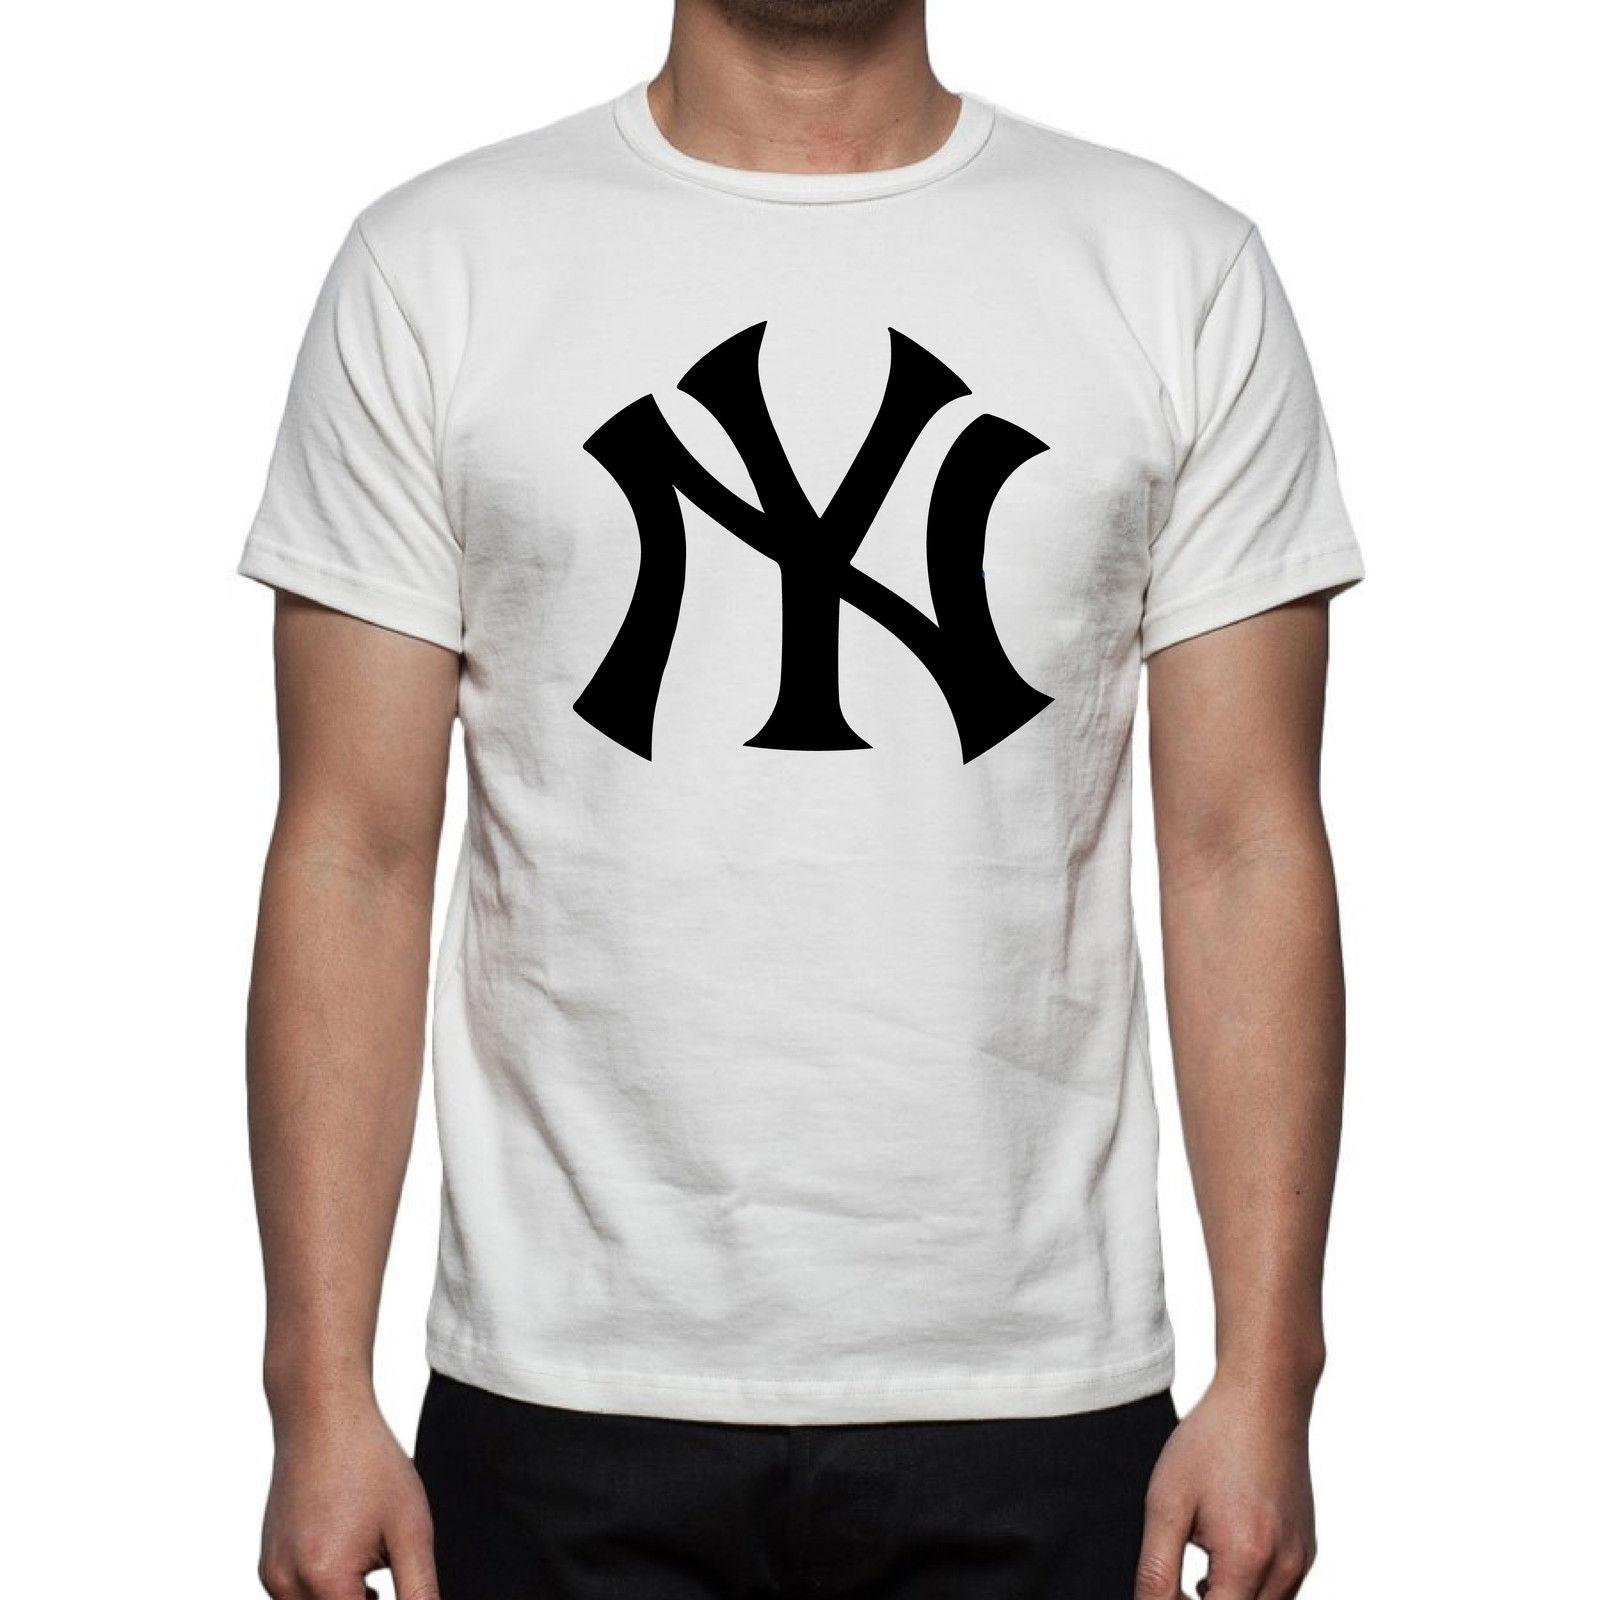 T-shirt Uomo Immagine Divertente Regalo 2016 Happiness Ny New York New Short Sleeve Round Collar Mens T Shirts Fashion 2018